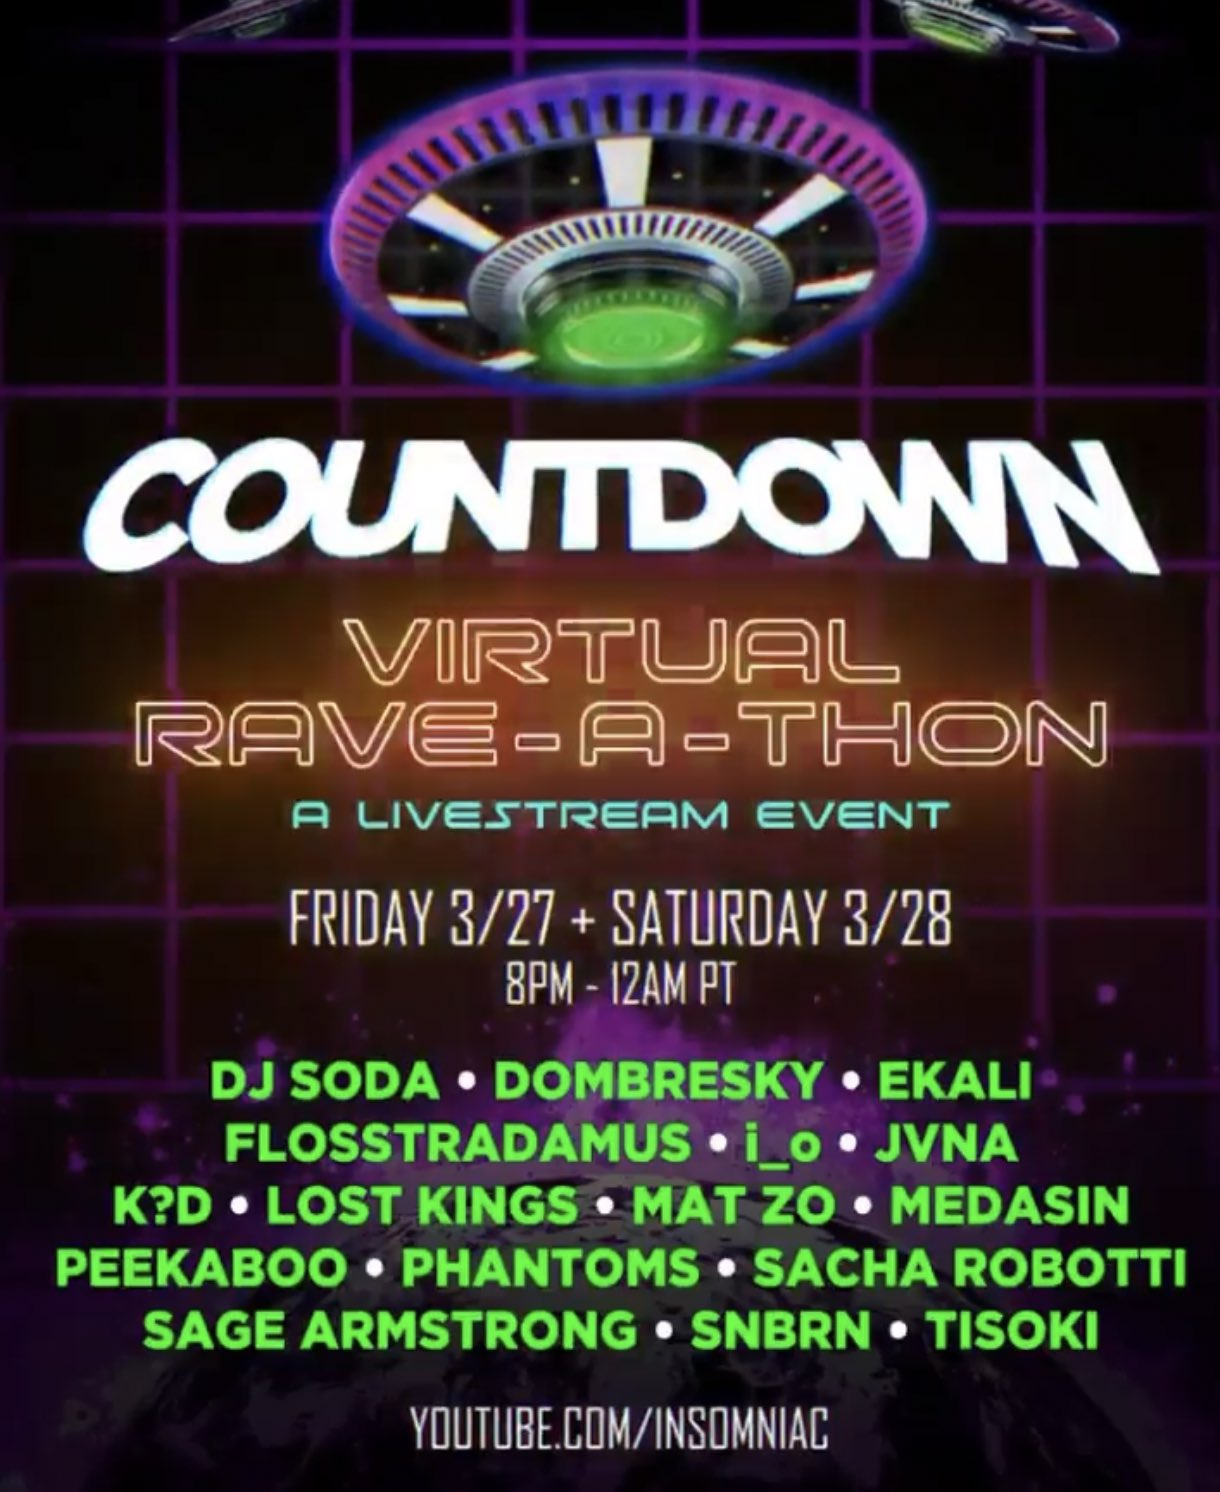 Countdown Virtual Rave-A-Thon